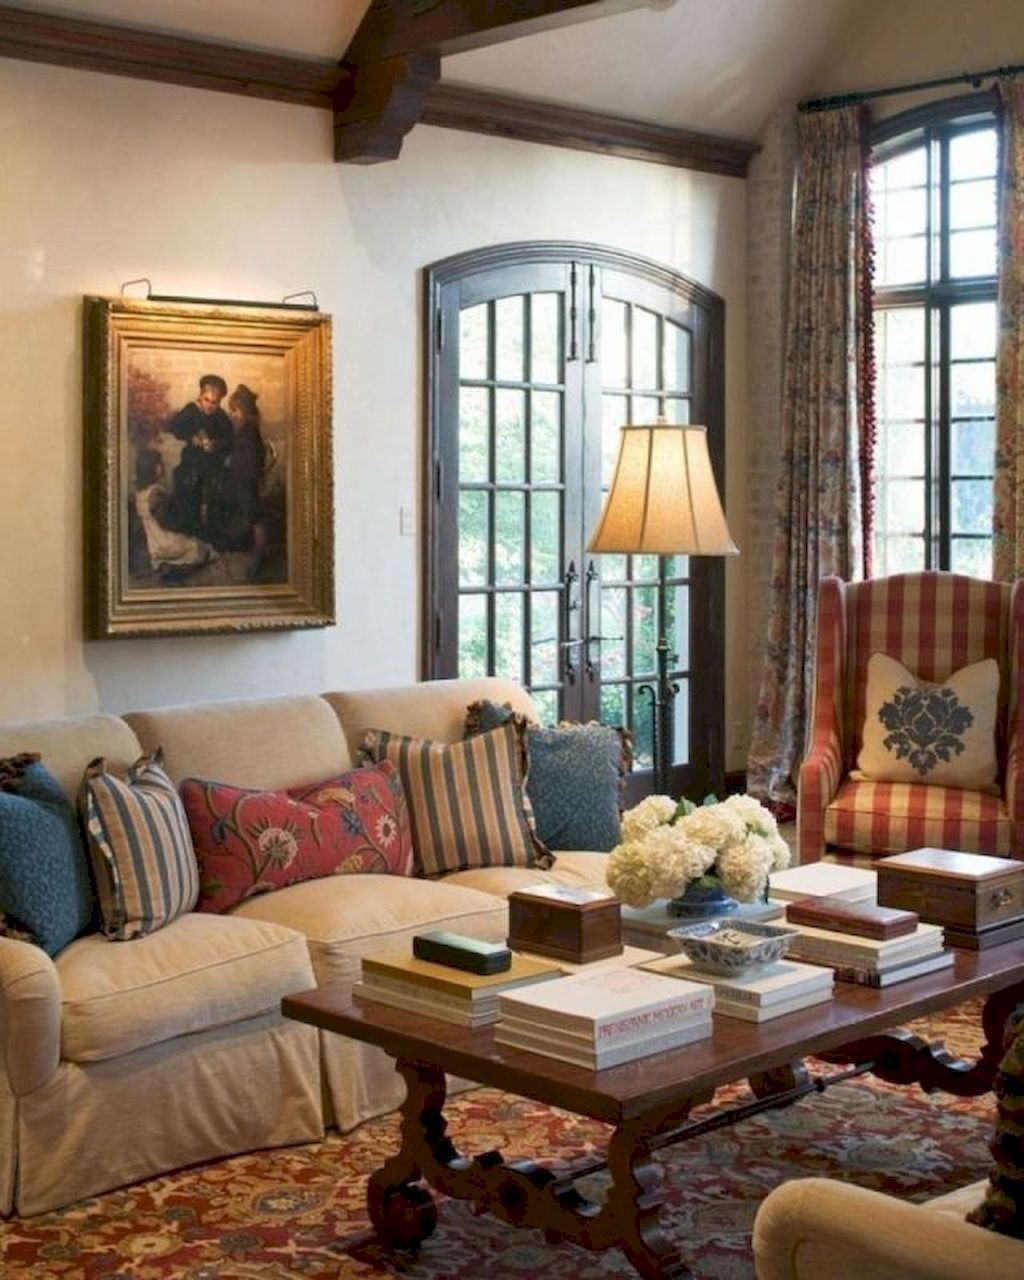 amazing french country living room decorating ideas | 70 Amazing French Country Living Room Decor Ideas | Decor ...